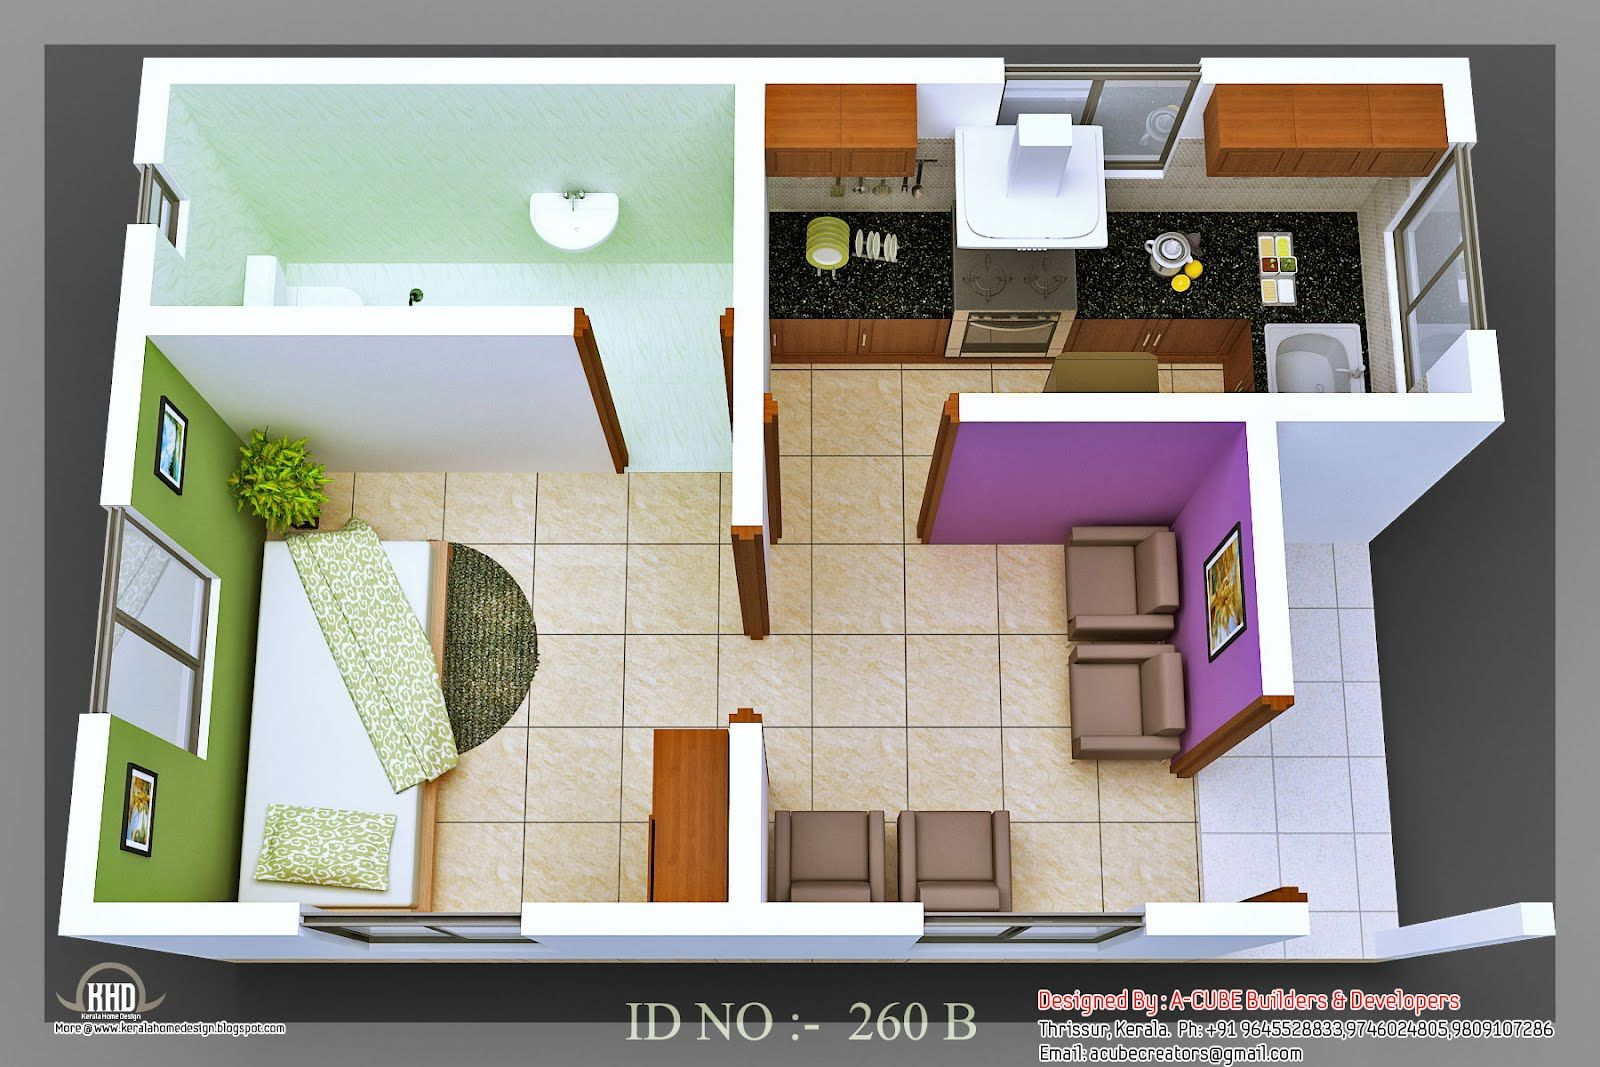 isometric views small house plans kerala home design floor information isometric small house plans - Small House Designs